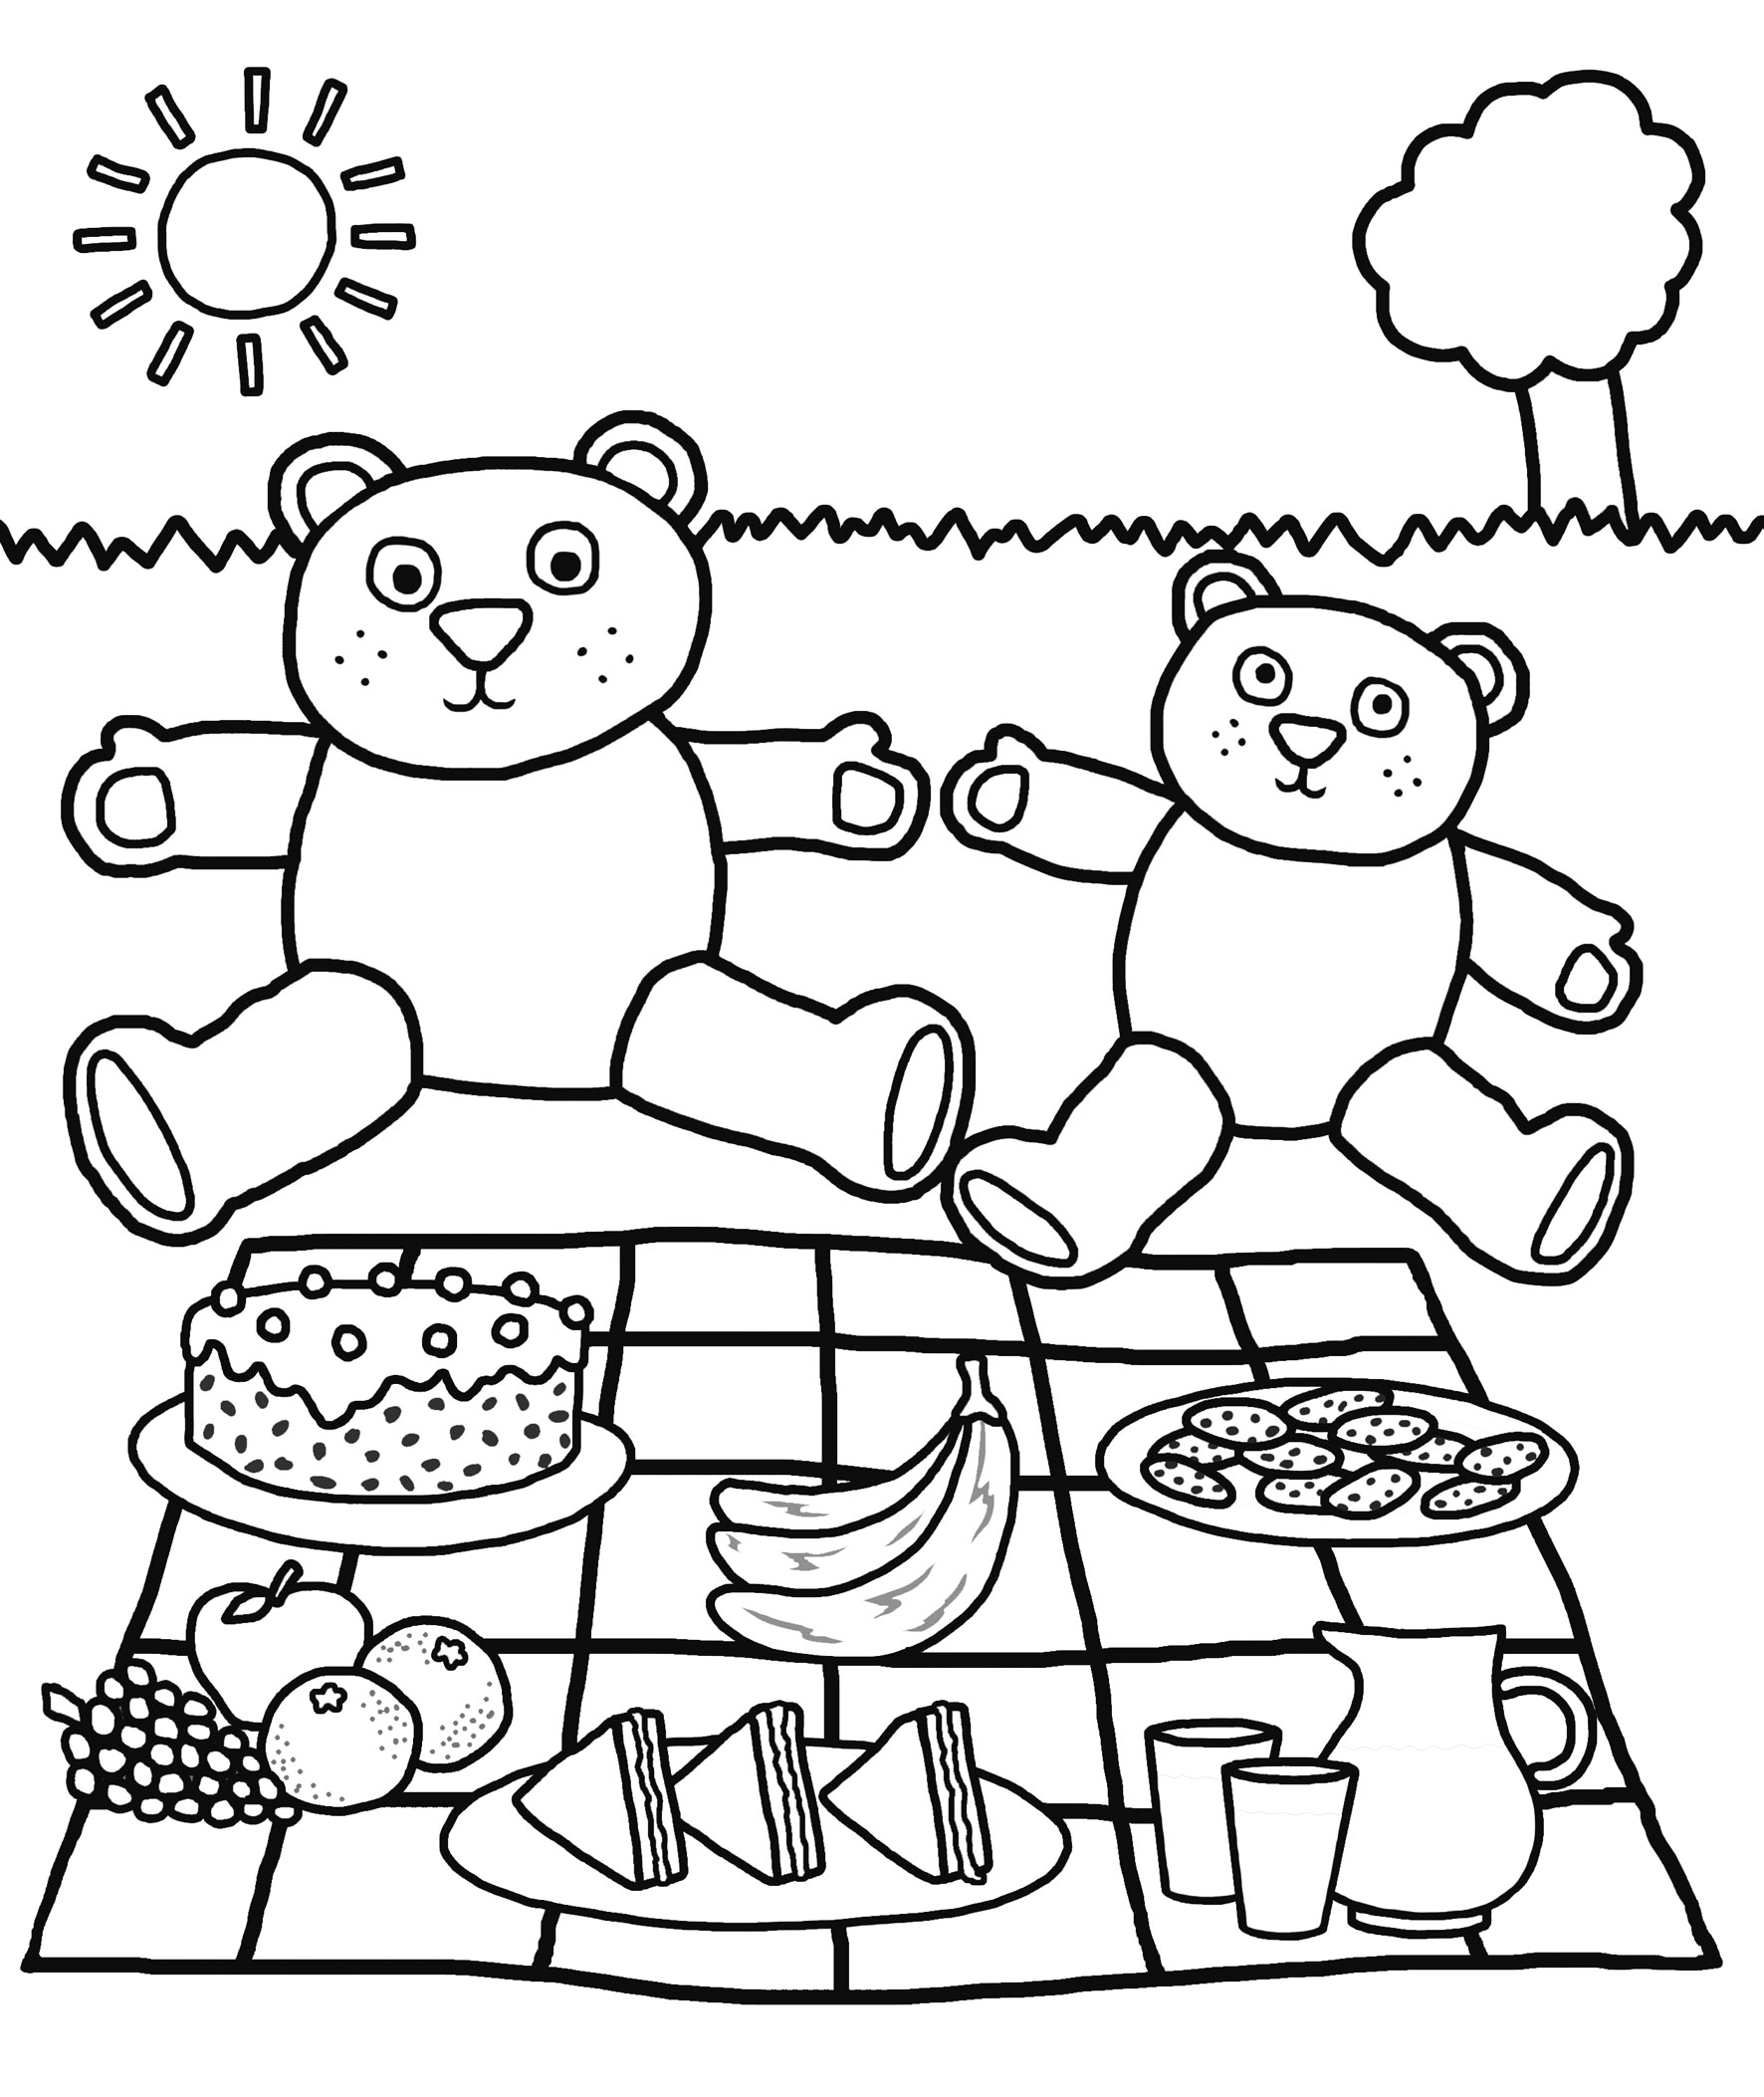 Download And Print Birthday Colouring Pages